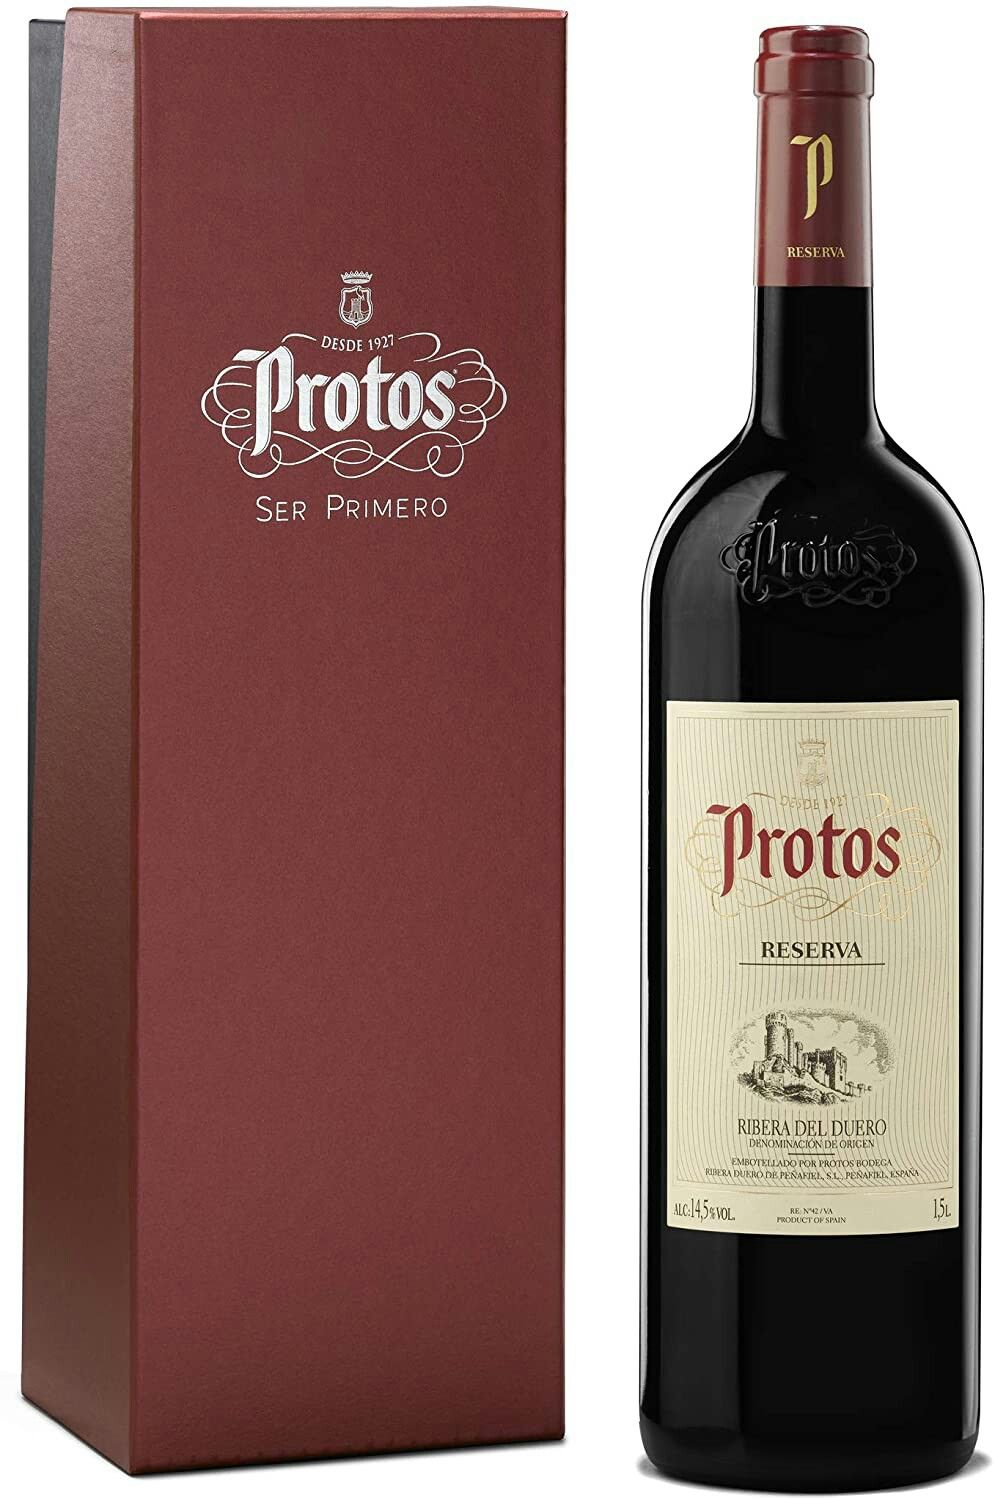 Pin By The Garcia S Group On Terreno 2 In 2020 Wine Bottle Wine Drinks